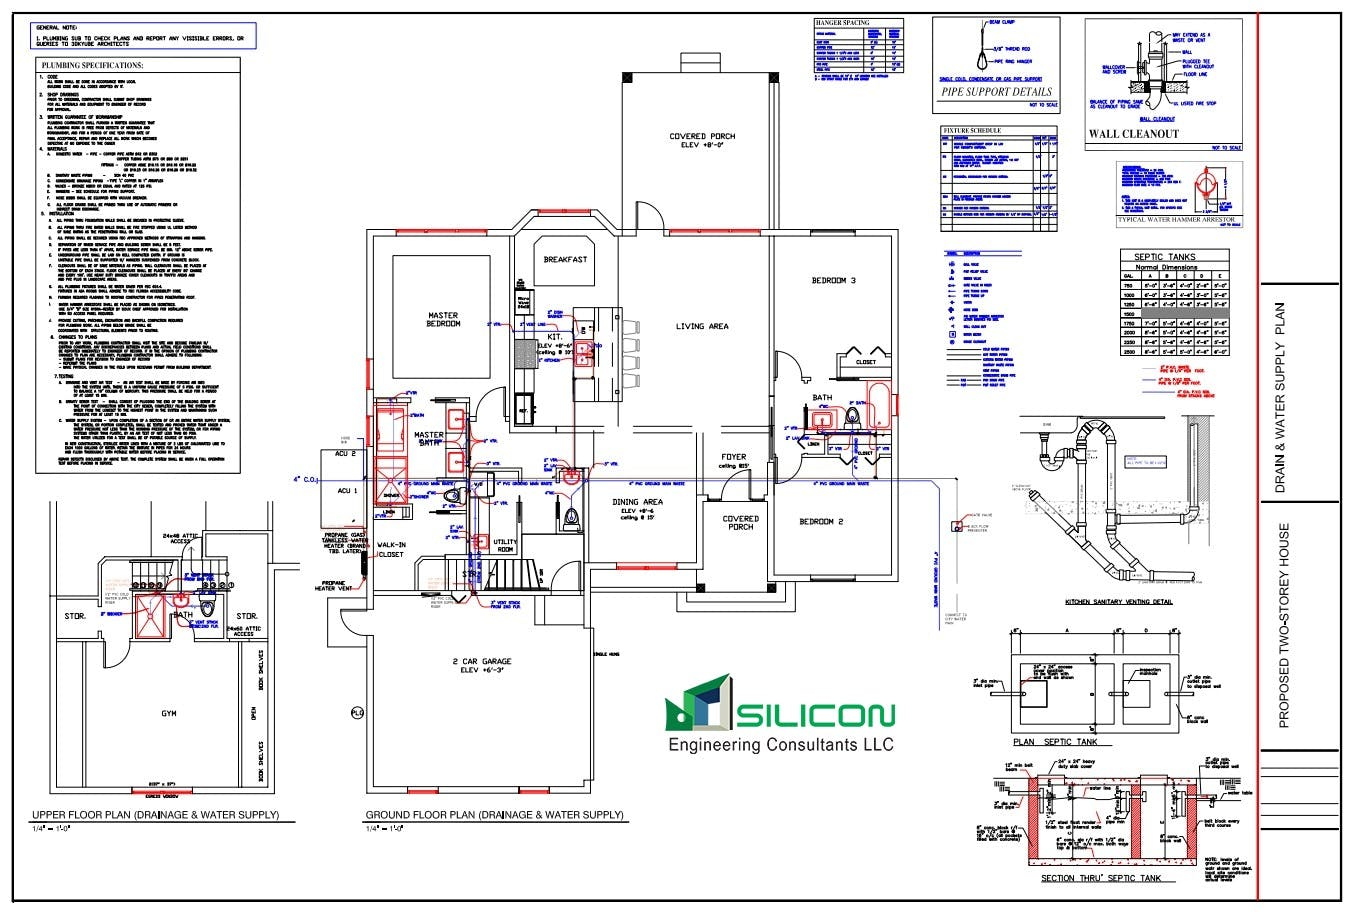 Plumbing Piping Cost Estimation Outsourcing Work | Silicon ...